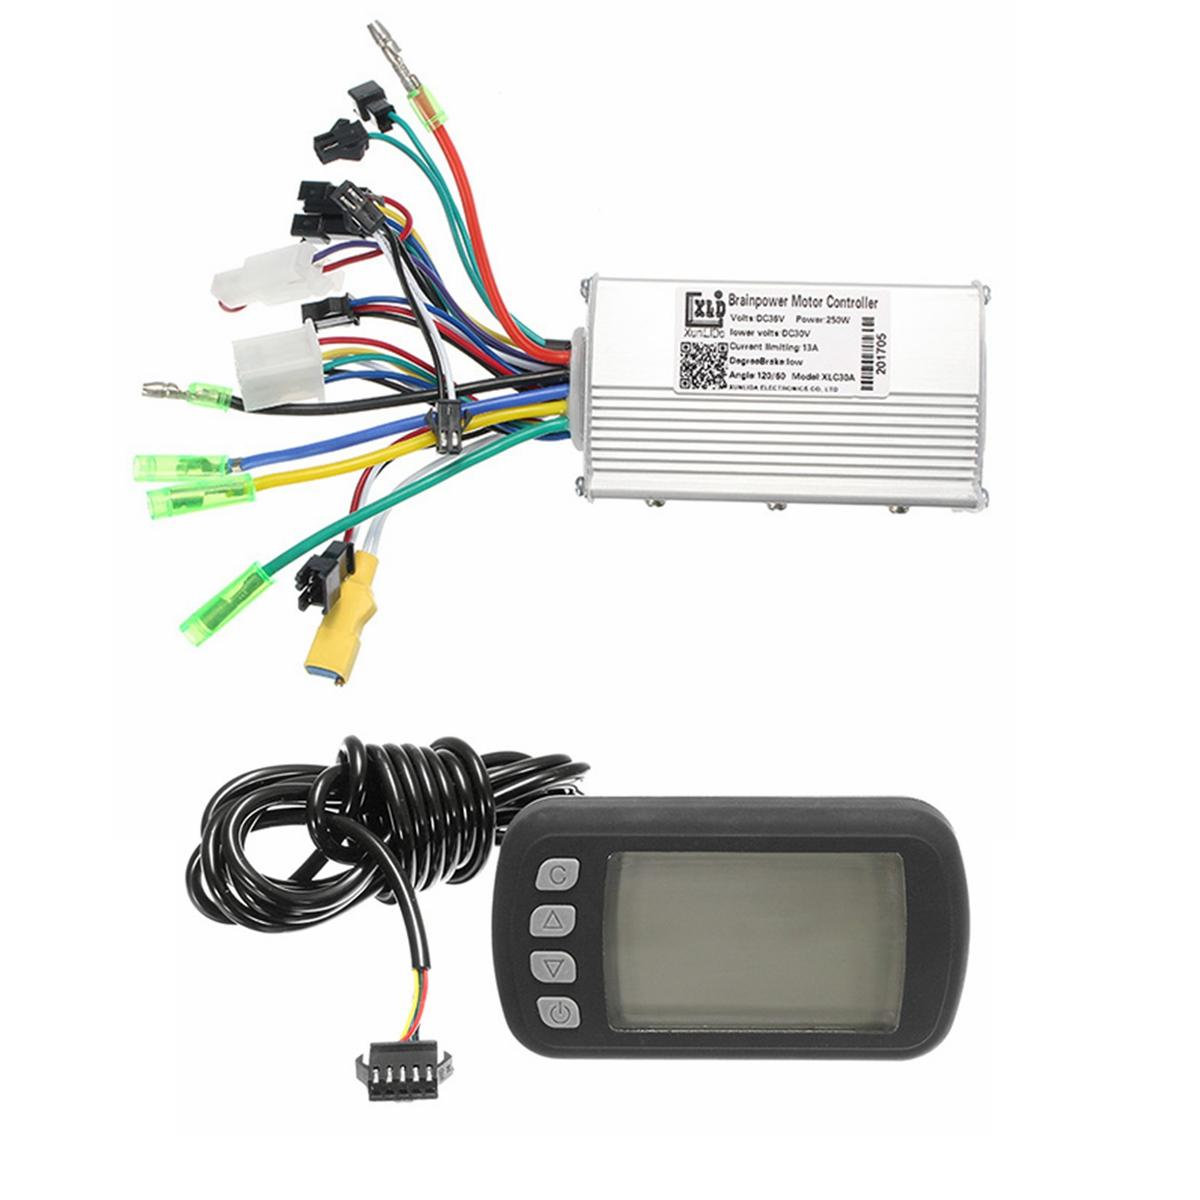 hight resolution of 24v36v48v250w350w bldc motor speed controller lcd display for mtb e bike scooter model a 250w 24v cod